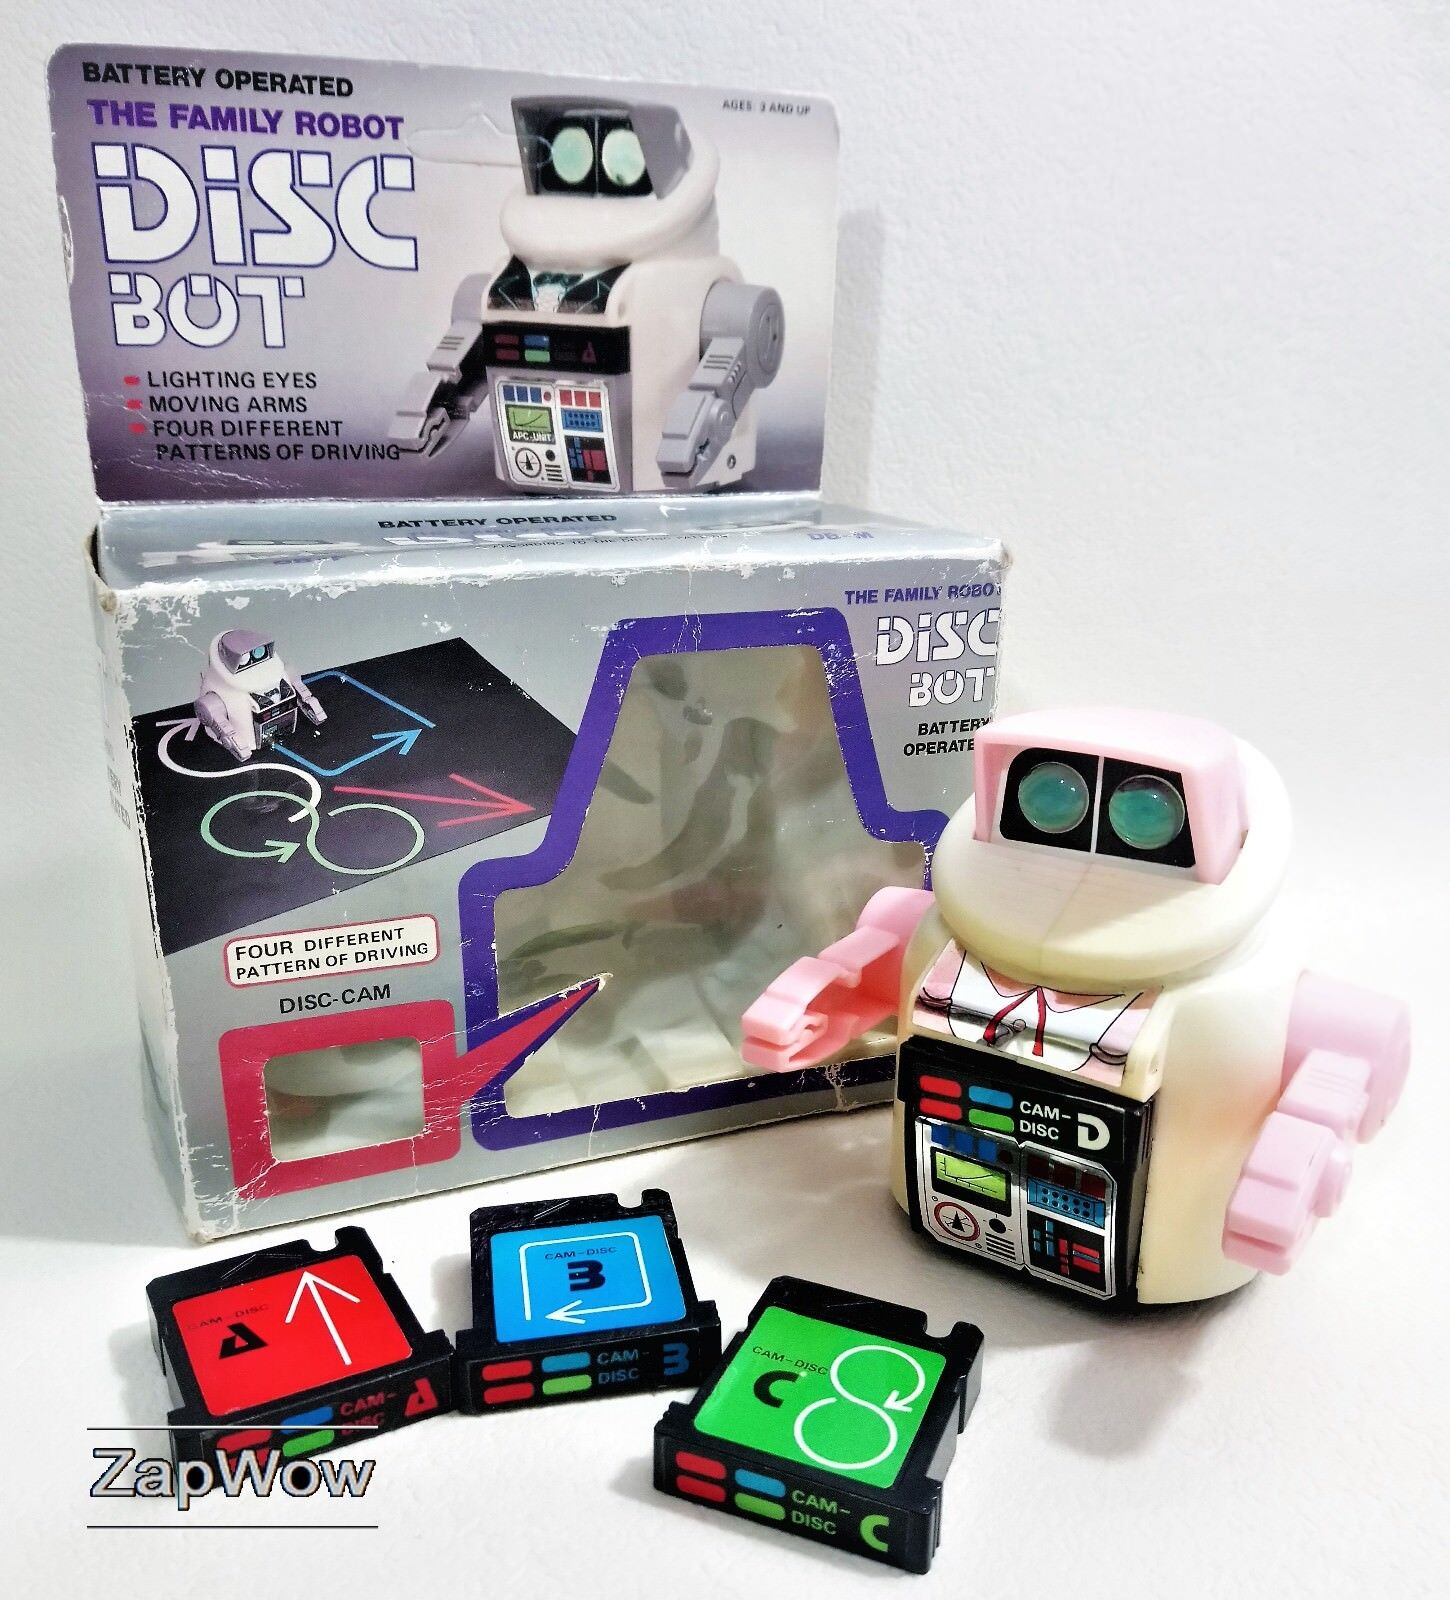 DISC BOT DB-F 1980s Robot Action Hong Kong Lights Plastic Battery Vintage